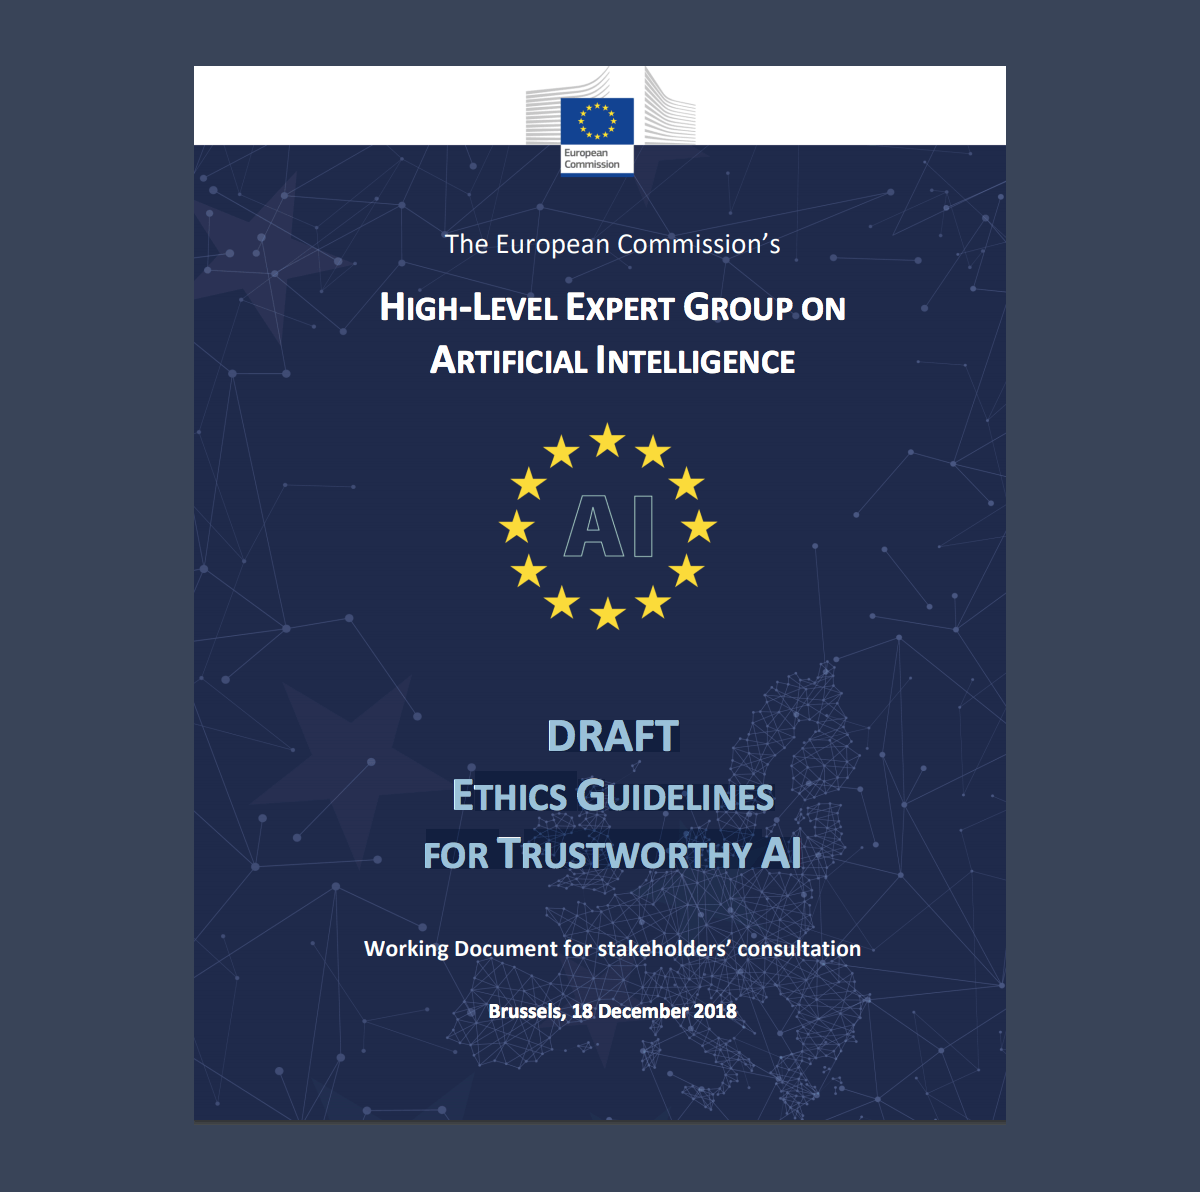 Europe High-Level Expert Group on Artificial Intelligence